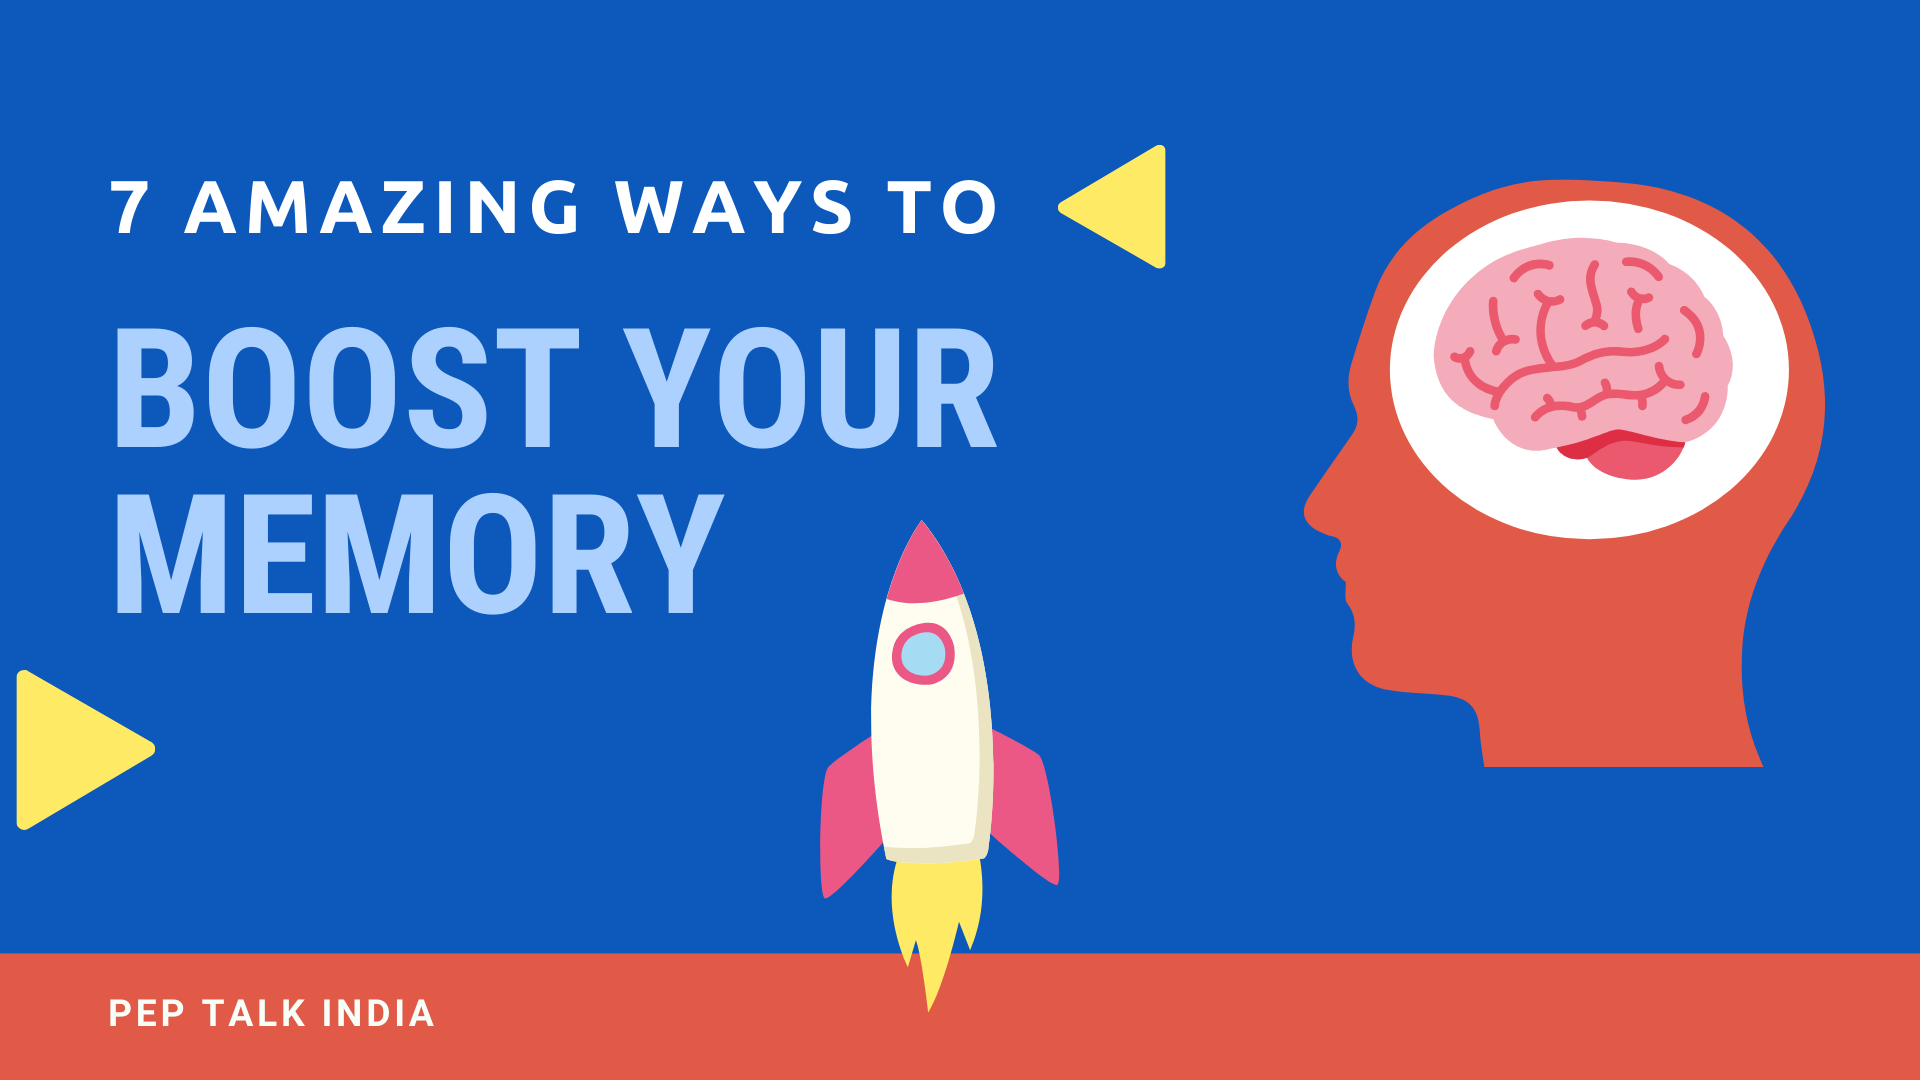 Ways to boost memory, Pep Talk